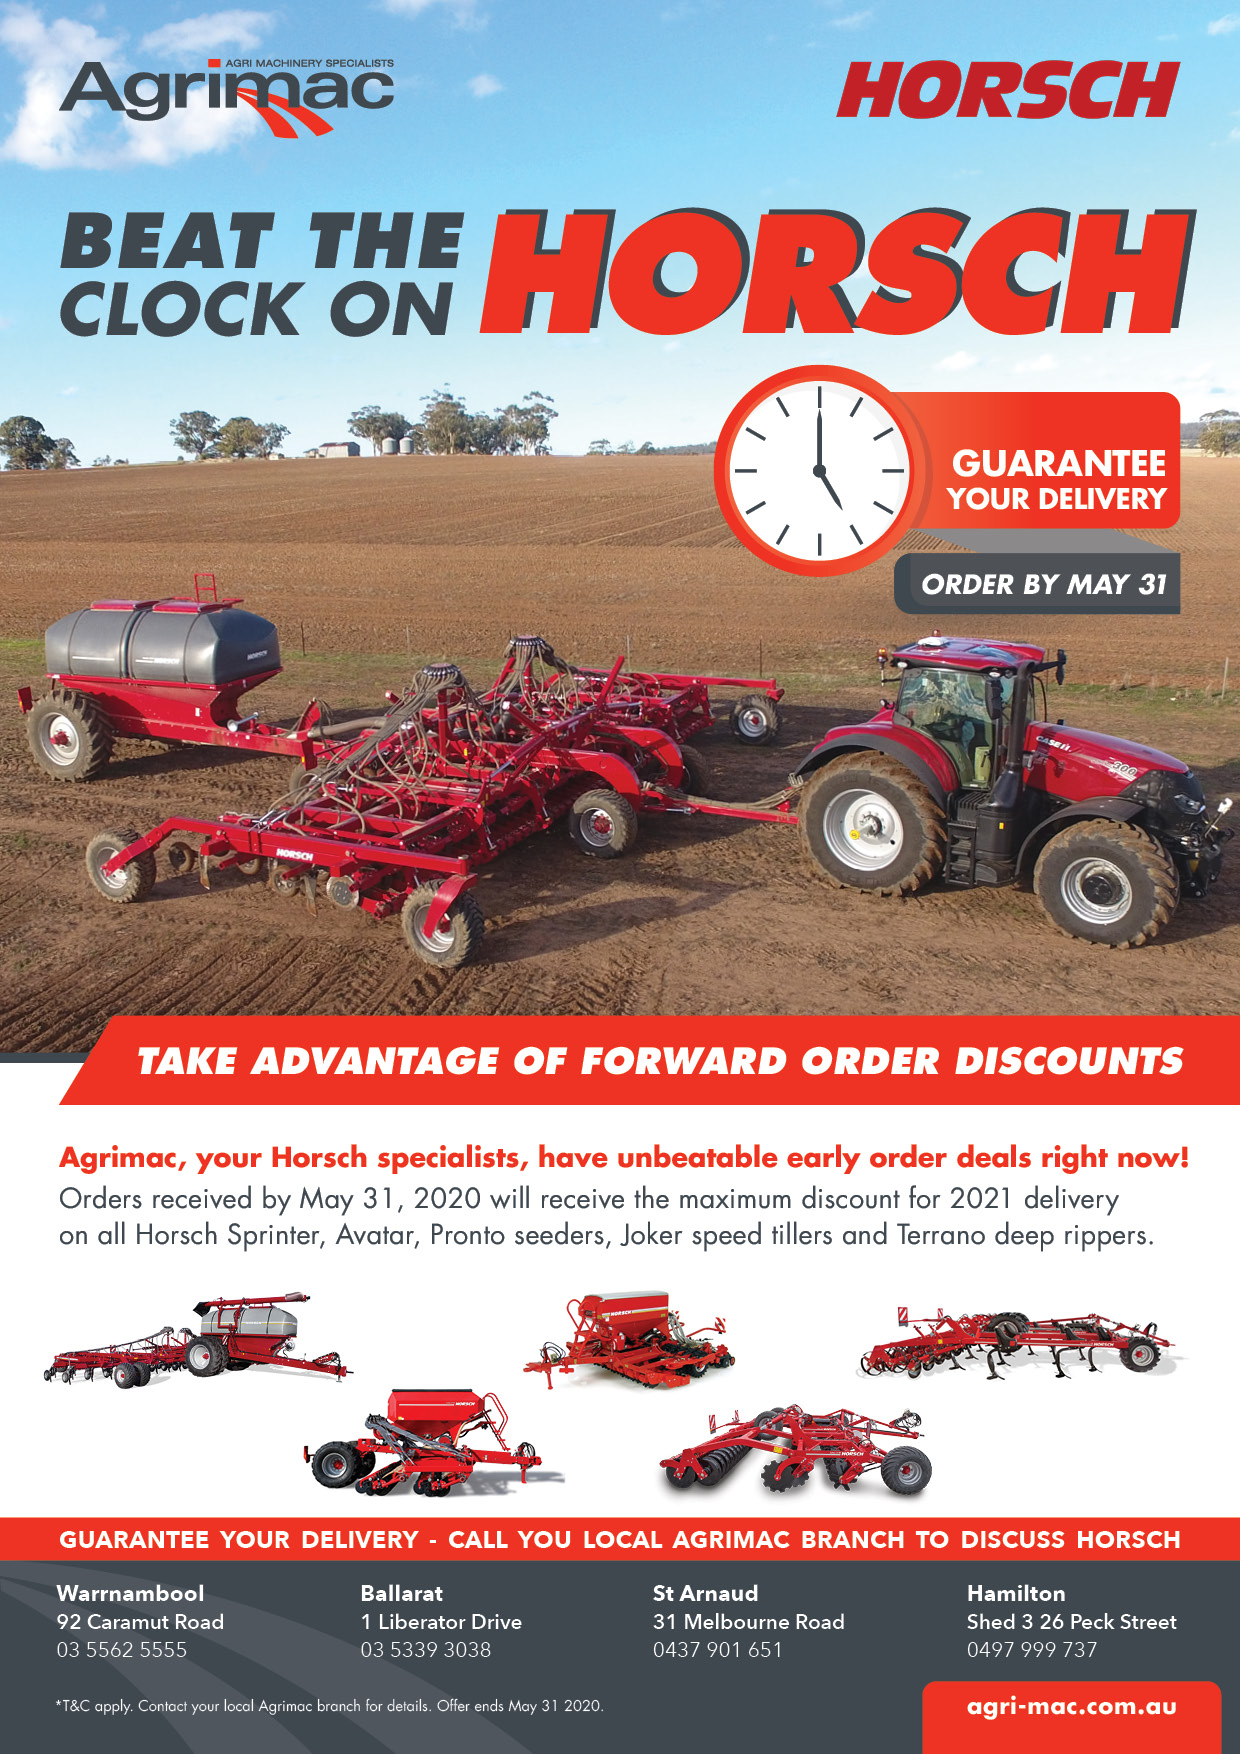 Beat the clock on Horsch